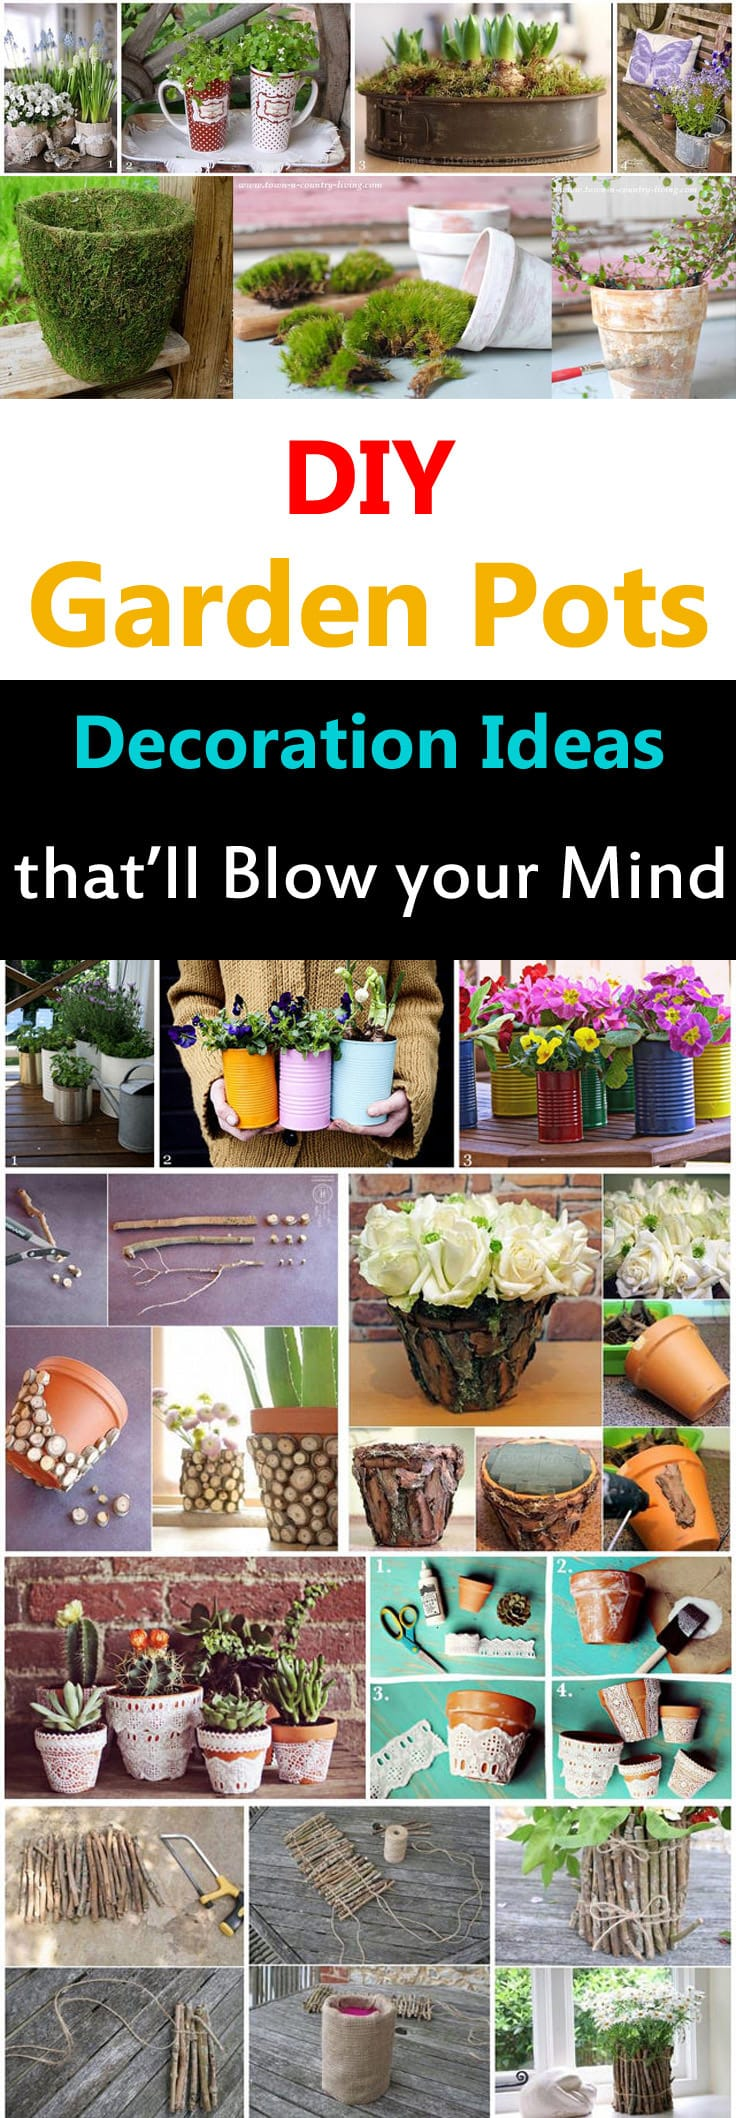 Do you have pots? Used or unused, old or new? If yes then these 15 DIY Garden Pots Decoration Ideas are made for you. Most of these ideas will sway your mind in wonder.